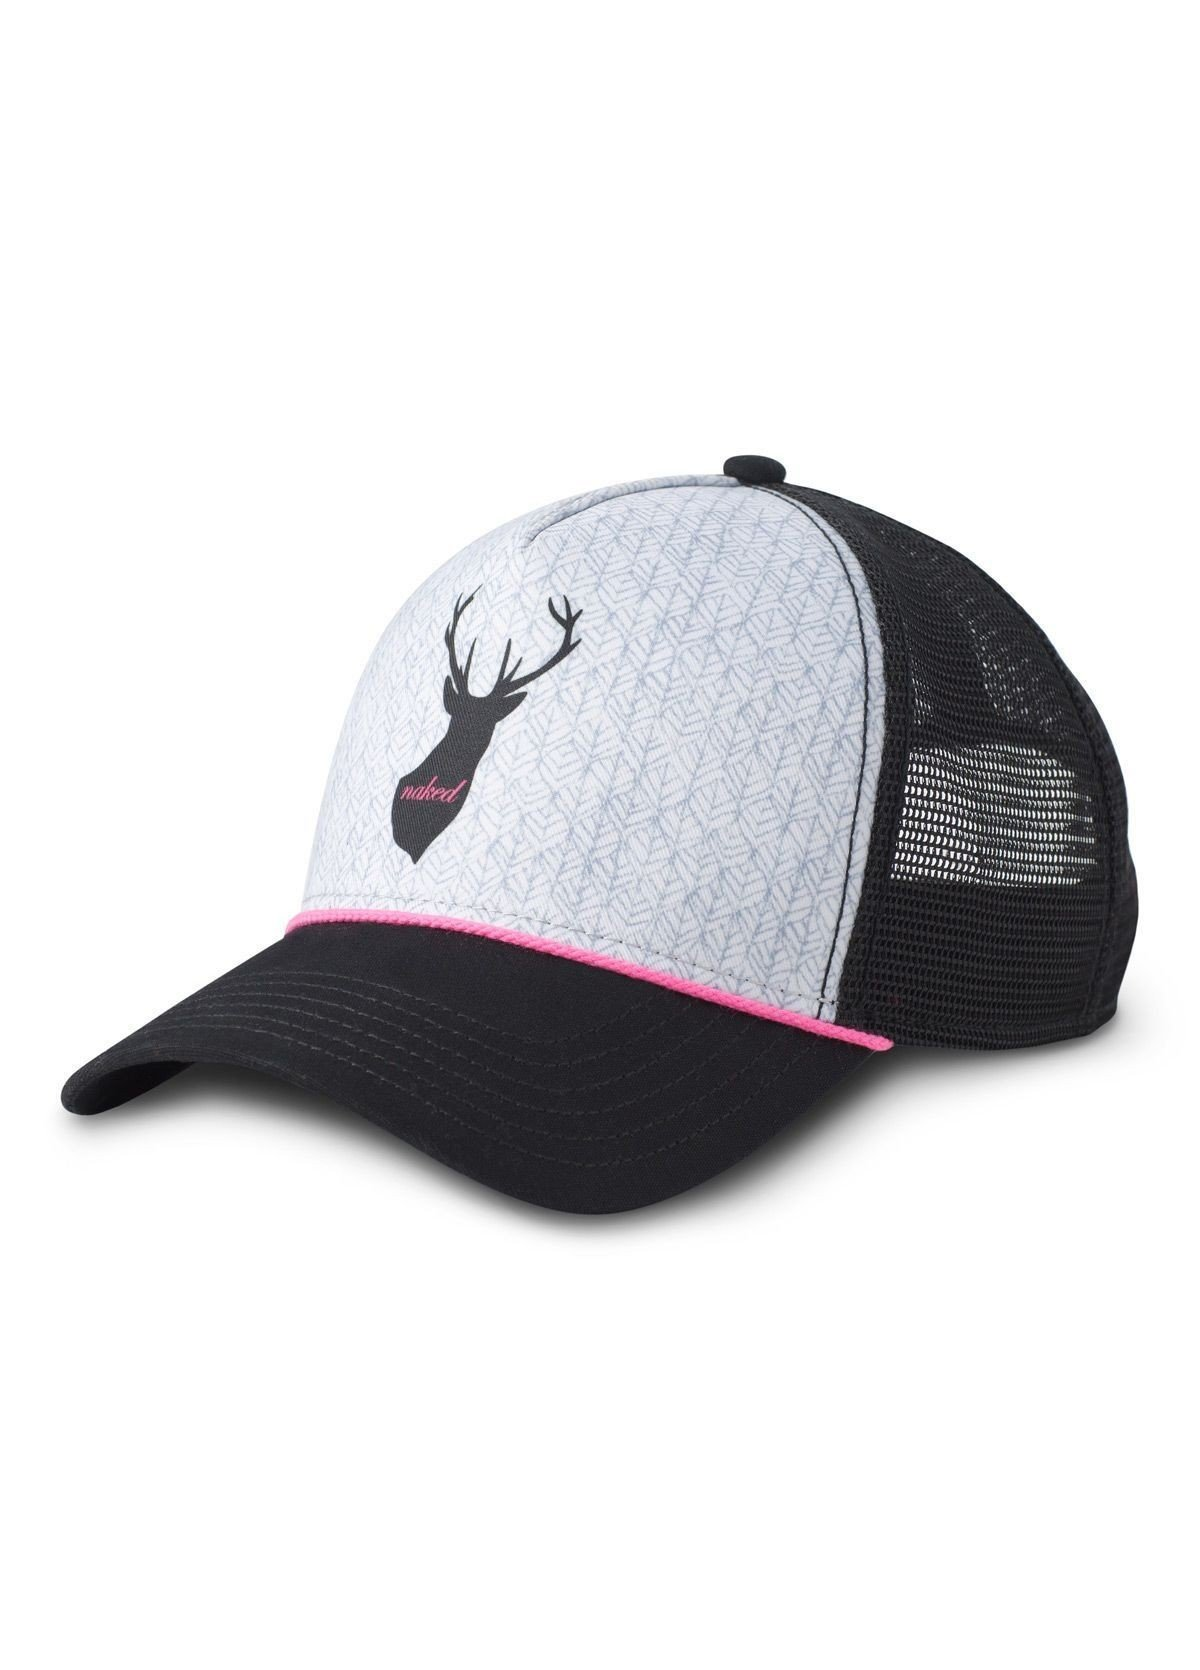 prAna Women's Journeyman Trucker Hat Buck Naked PRJMTHwbuck